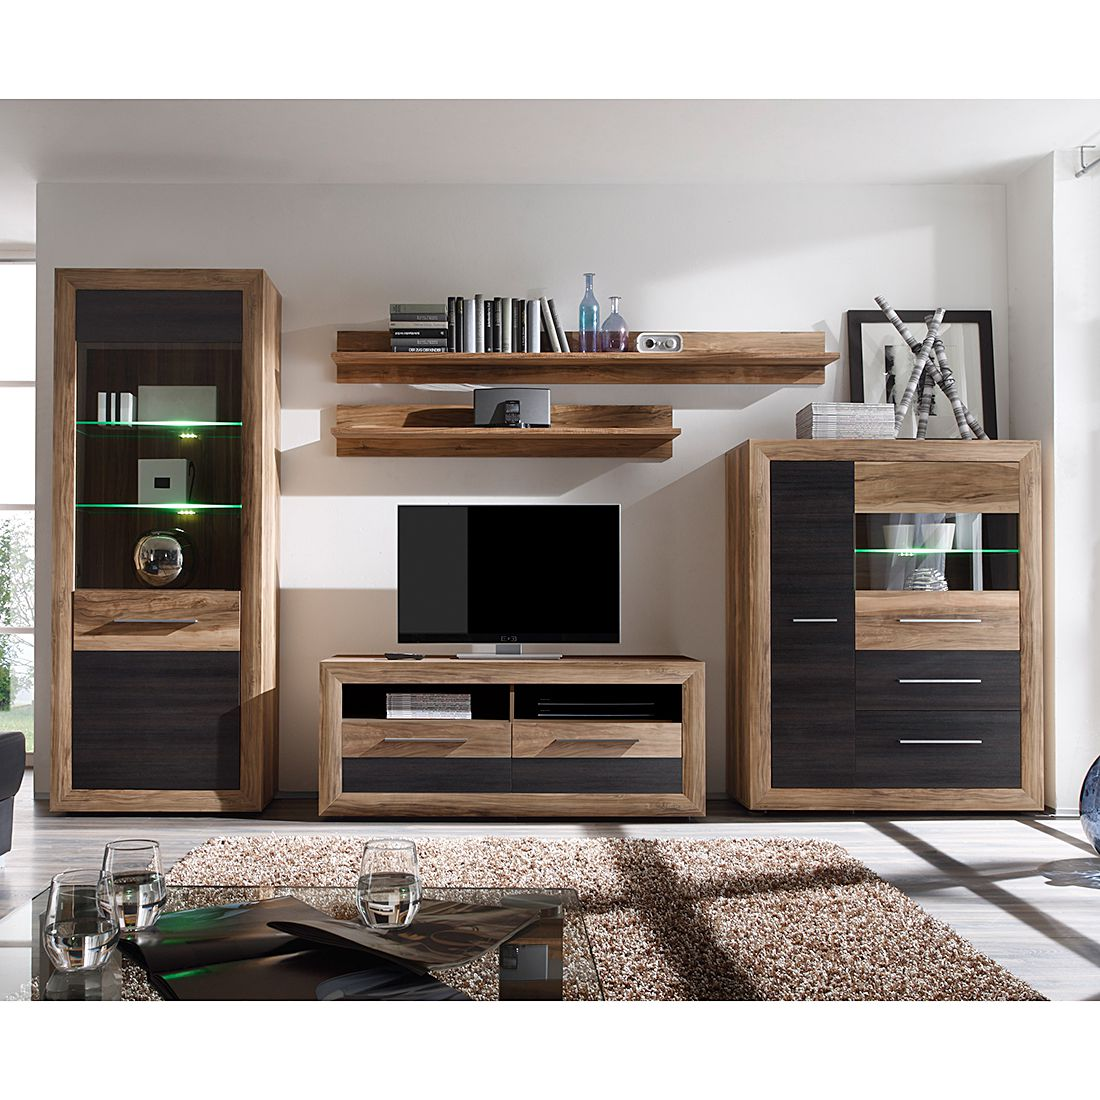 Meuble Tv San Francisco Laque Blanc Brillant Artzein Com # Ensemble Meuble Tv Et Table Basse